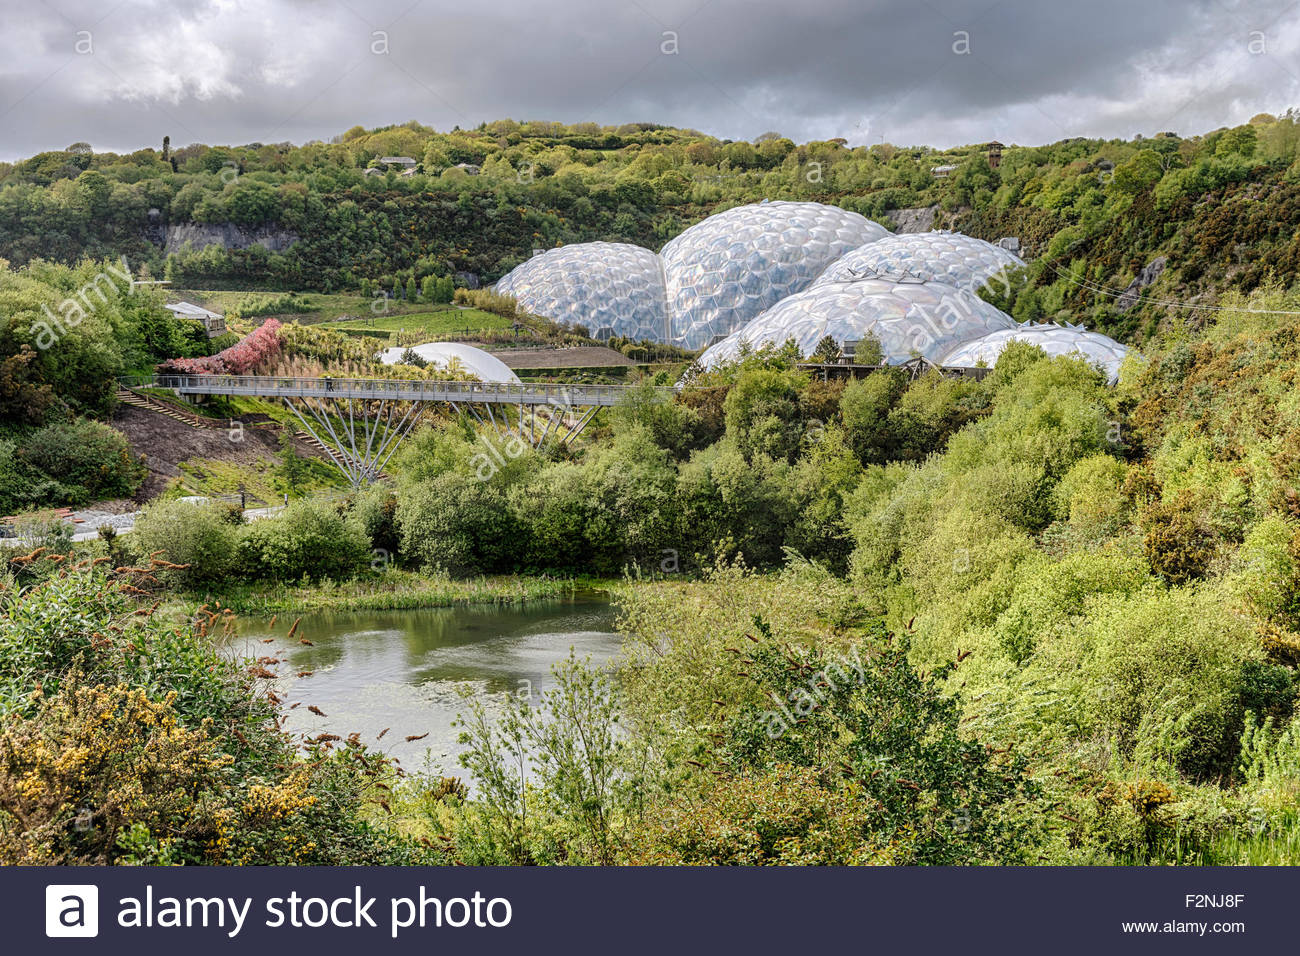 Eden Project compound in Cornwall, England, UK | Aussicht ueber die Aussenanlage des Eden Projects, Cornwall - Stock Image